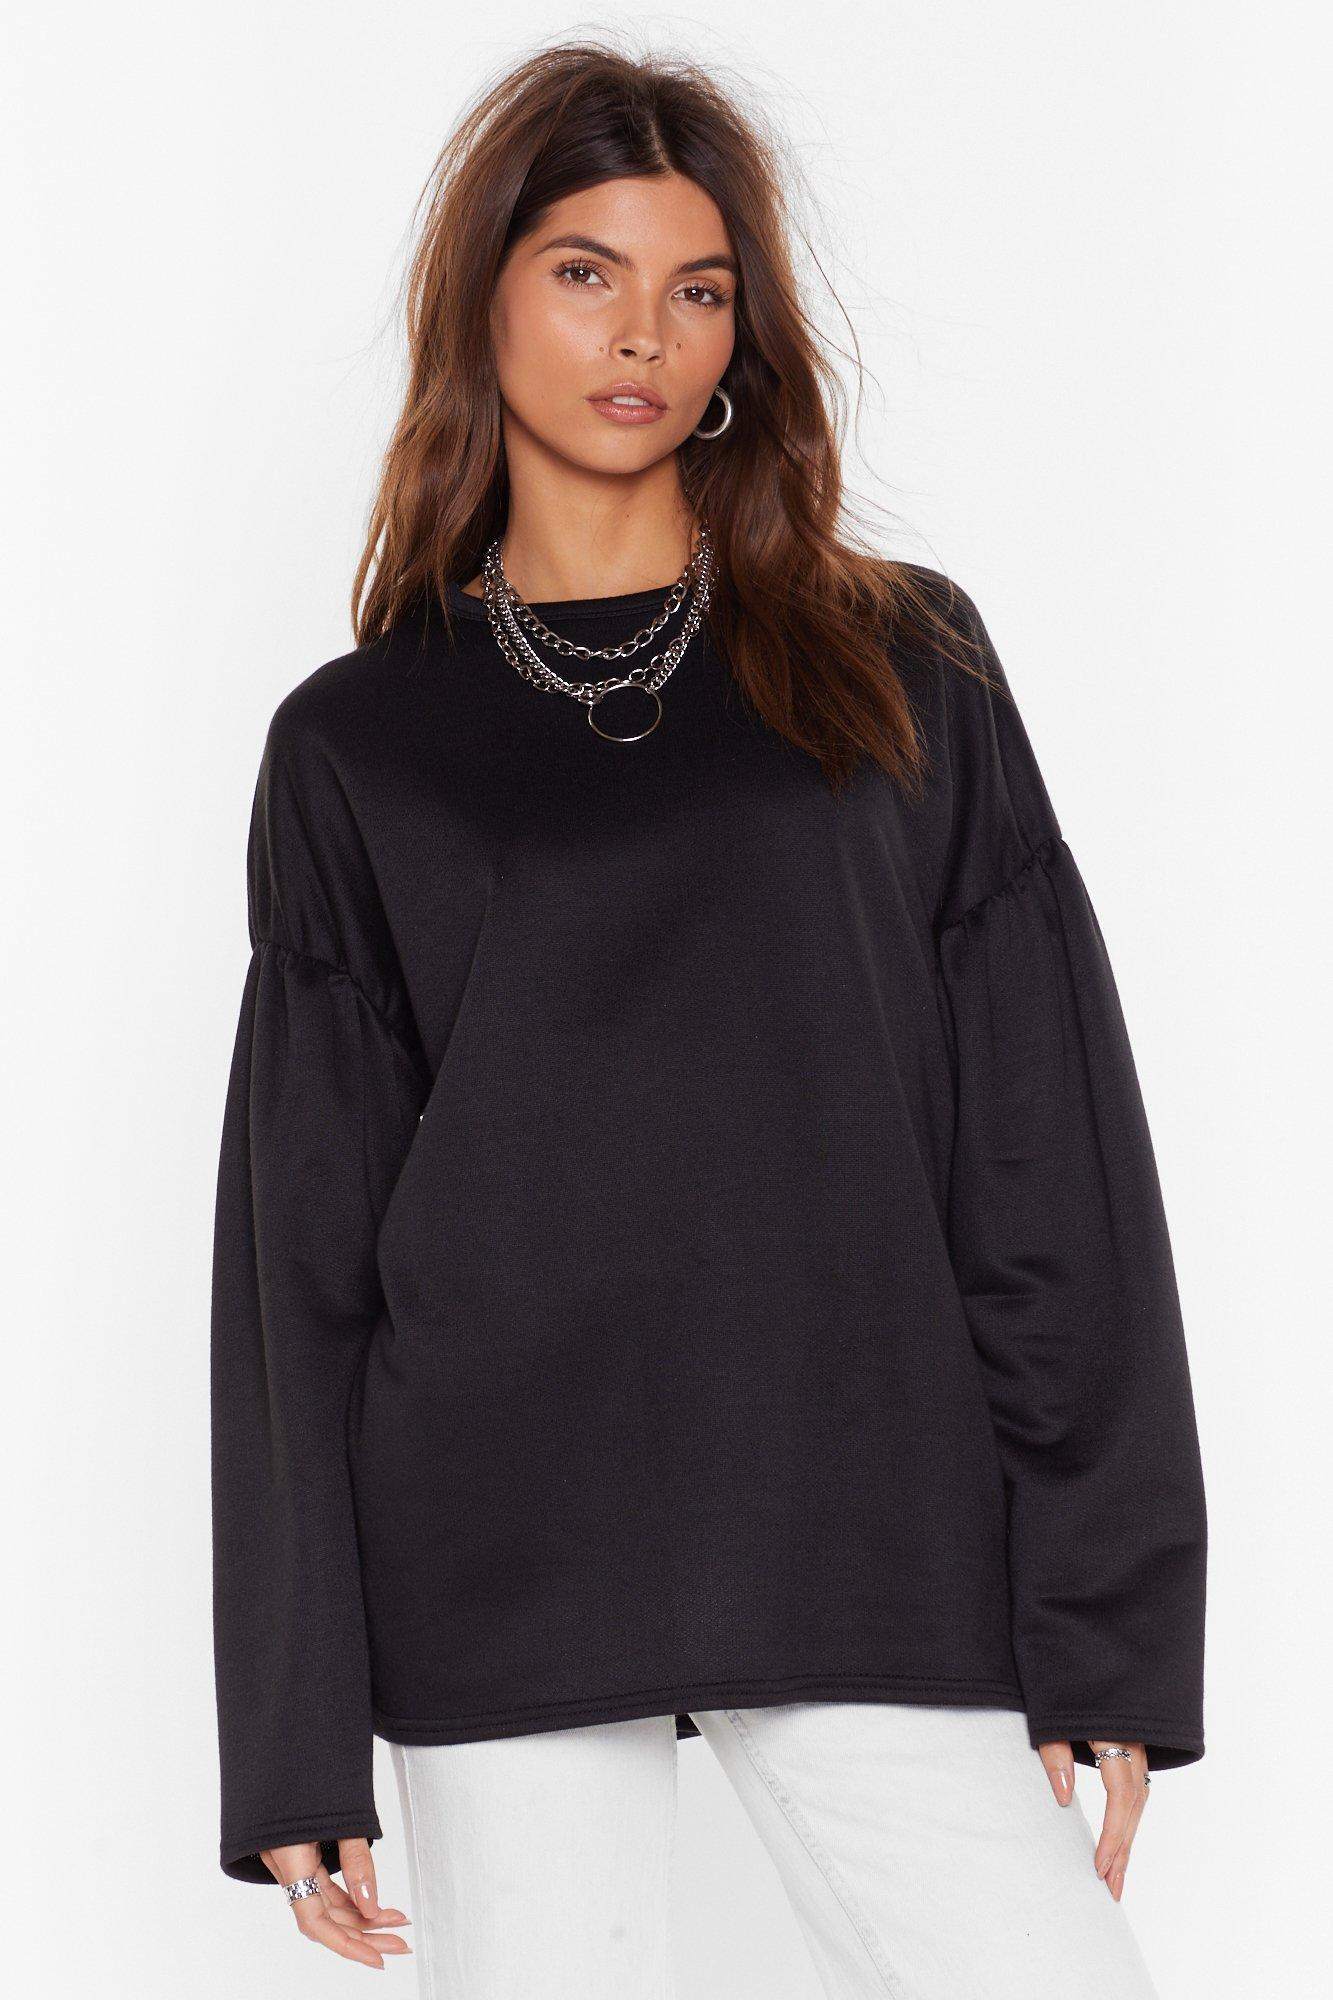 Sweat oversize à manches bouffantes J'attends